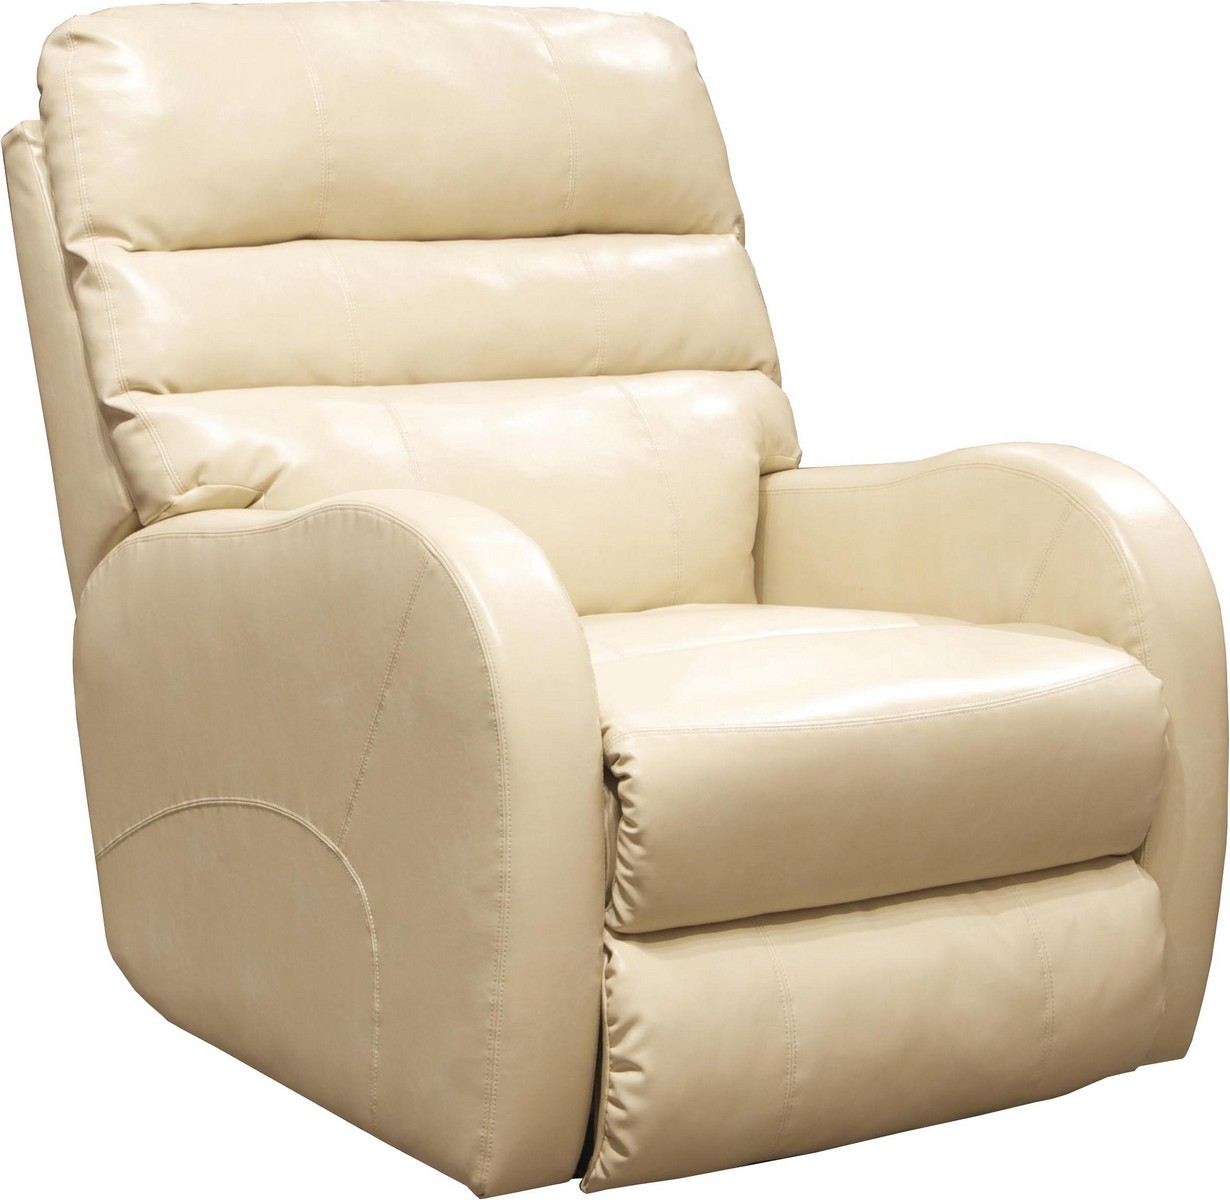 CatNapper Searcy Rocker Recliner - Parchment